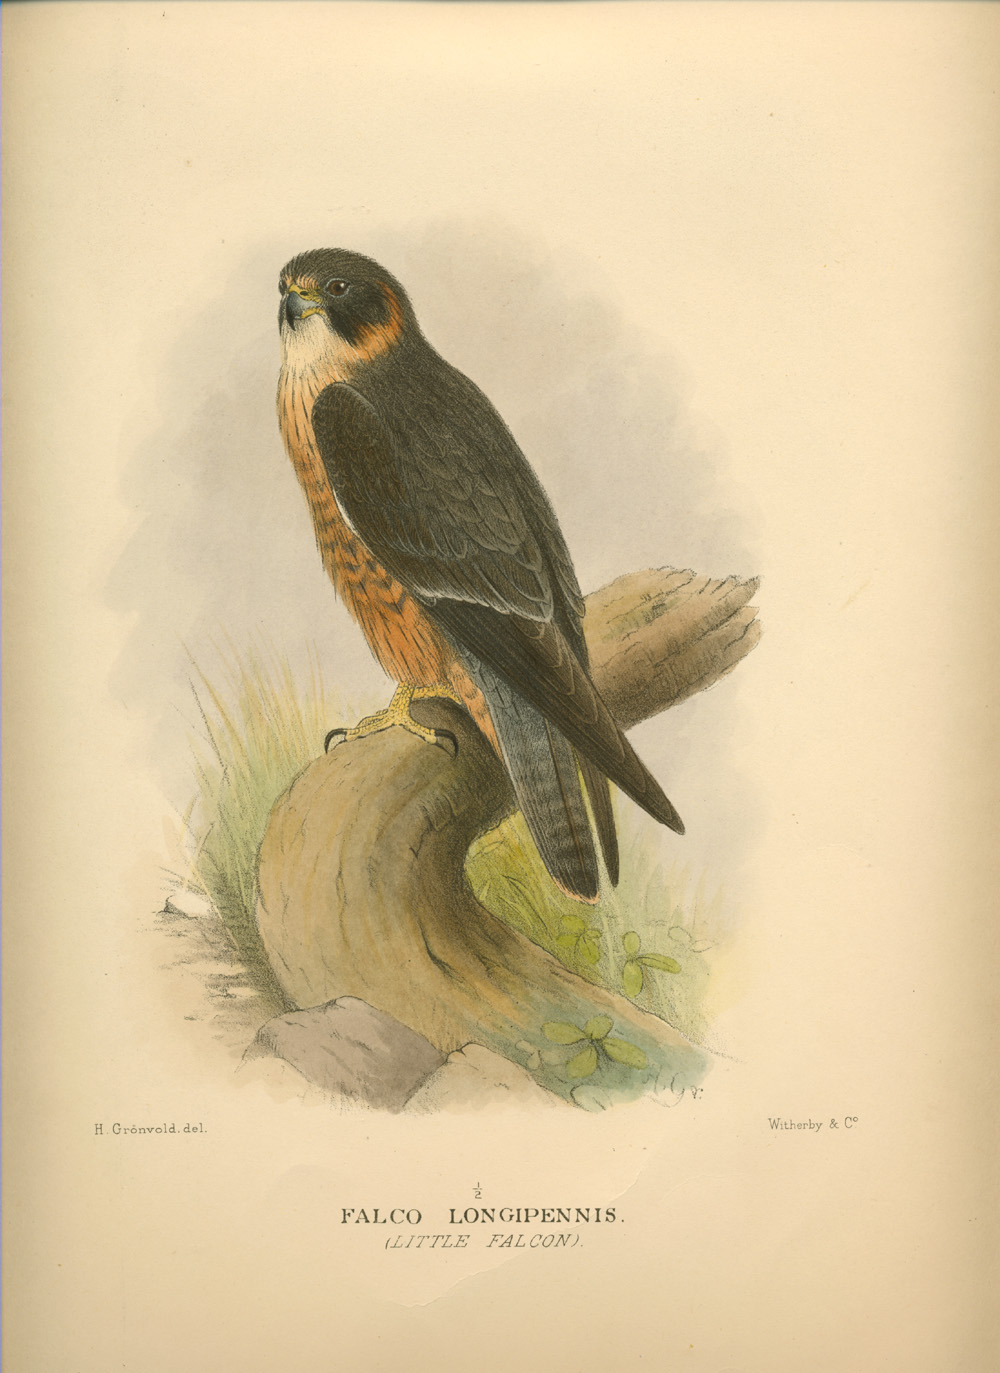 Little Falcon, Falco longipennis. Gregory Mathews' Birds of Australia c1910-27.